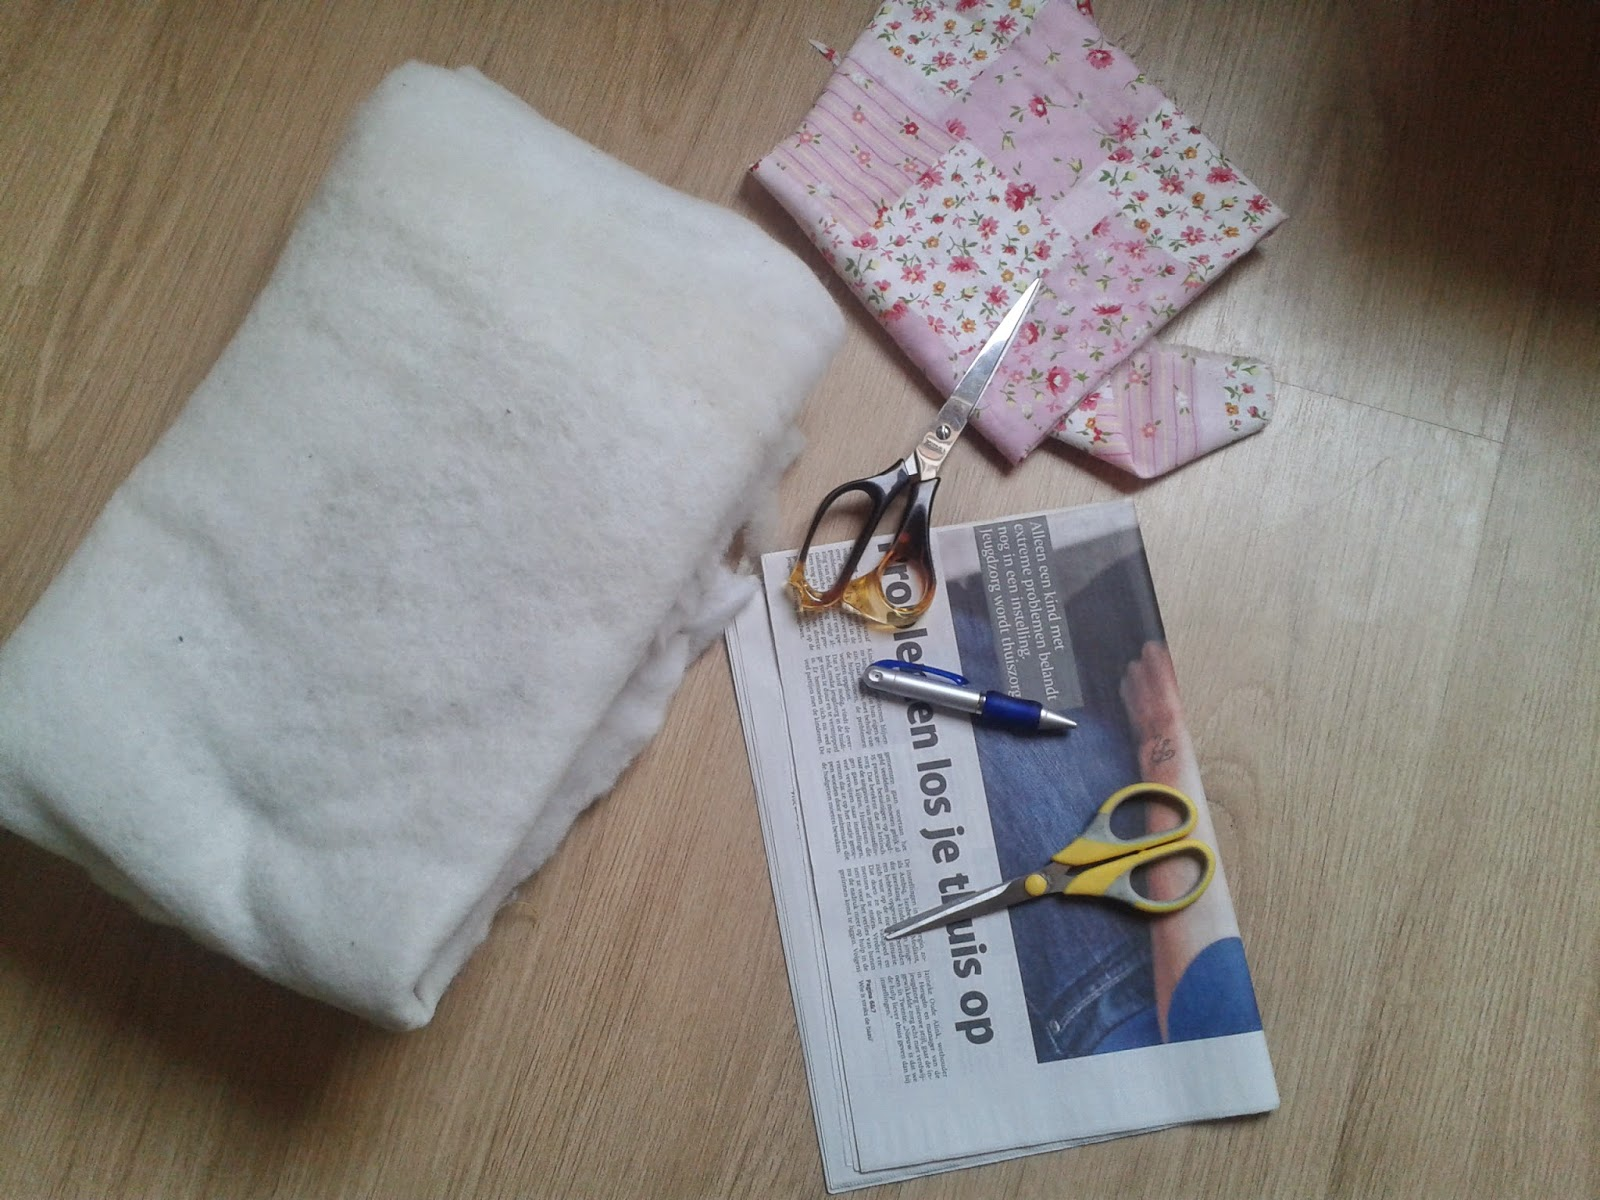 2014 04 03+17.15.31 - Travel pillow maken!